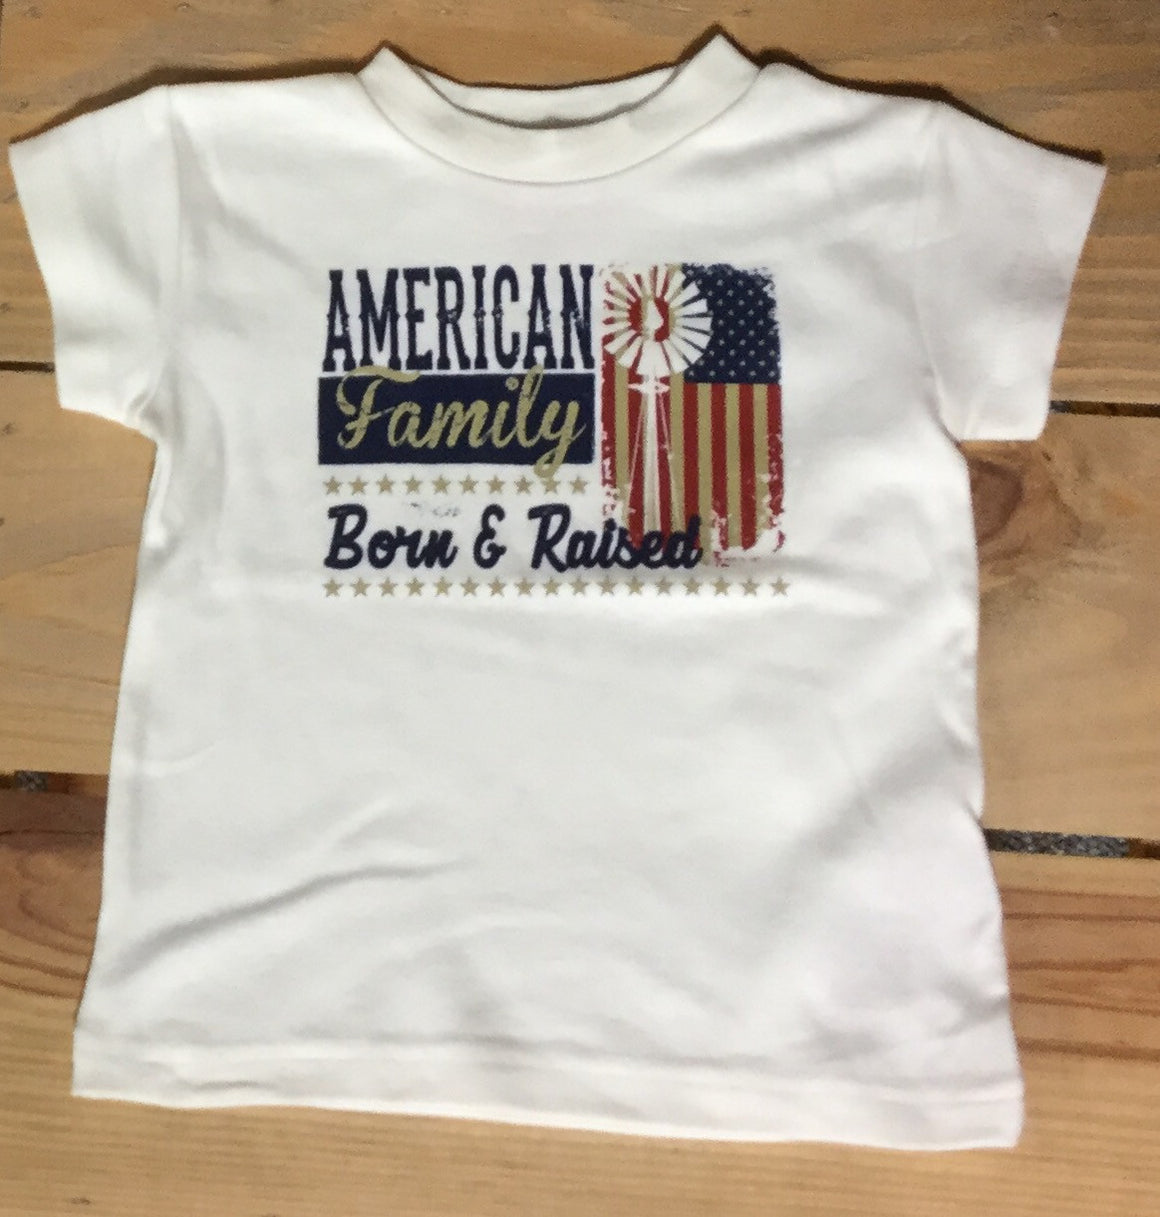 Farm Boy Born & Raised Ivory Youth Tee